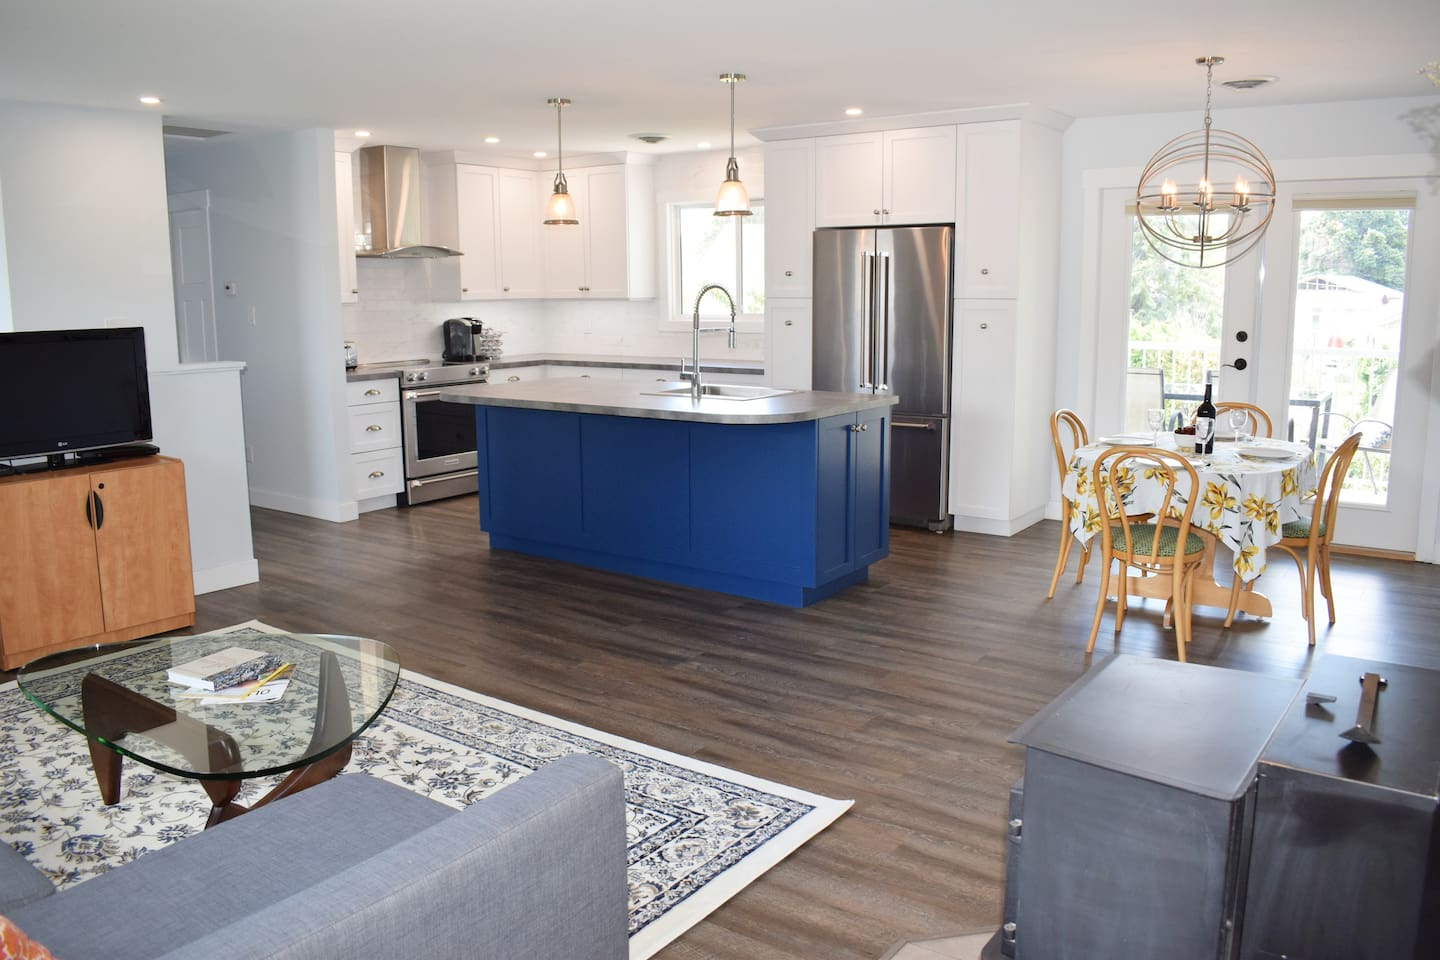 Open concept living - full kitchen with dishwasher